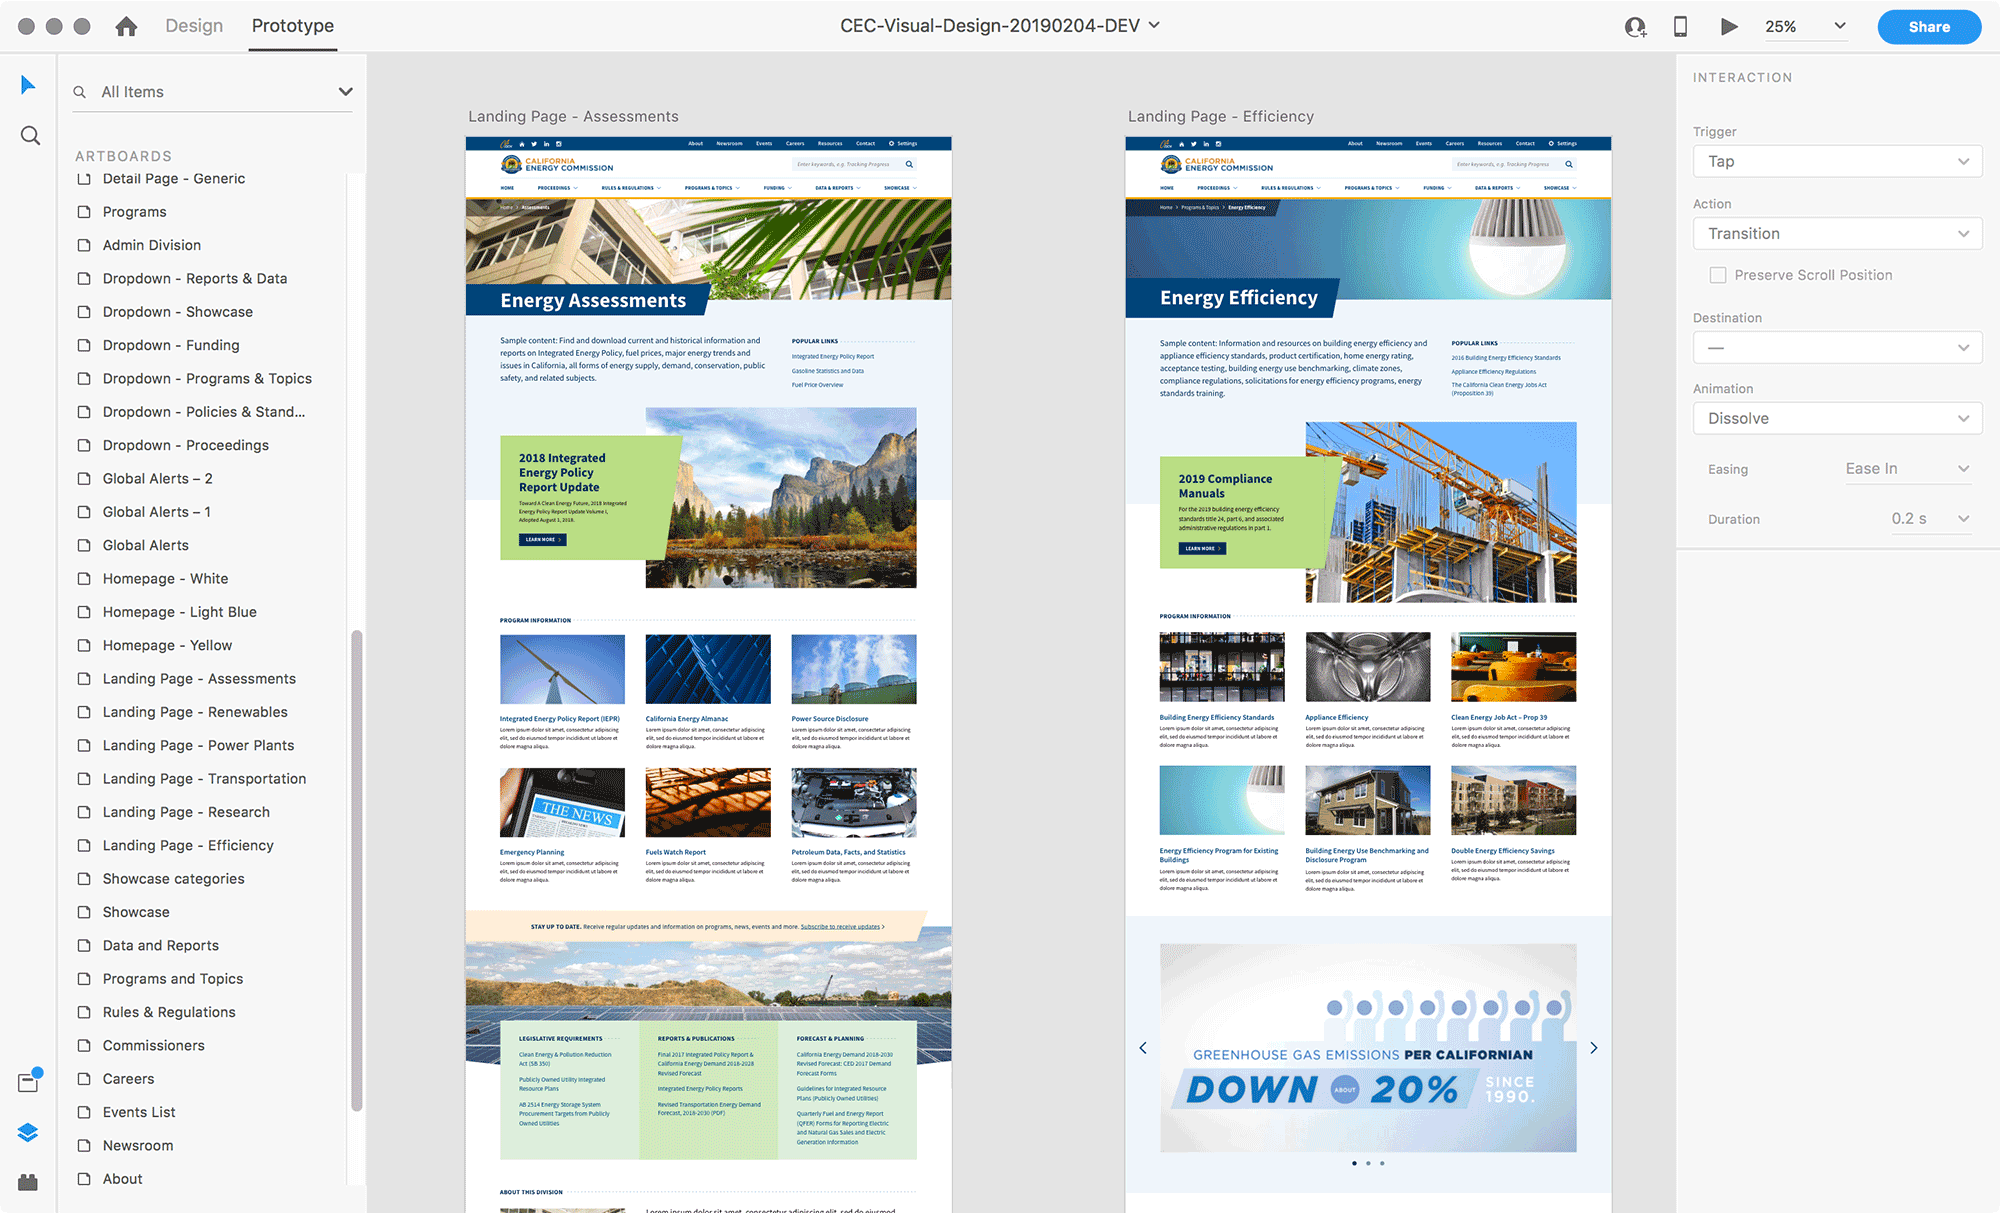 Adobe XD file for the California Energy Commission website